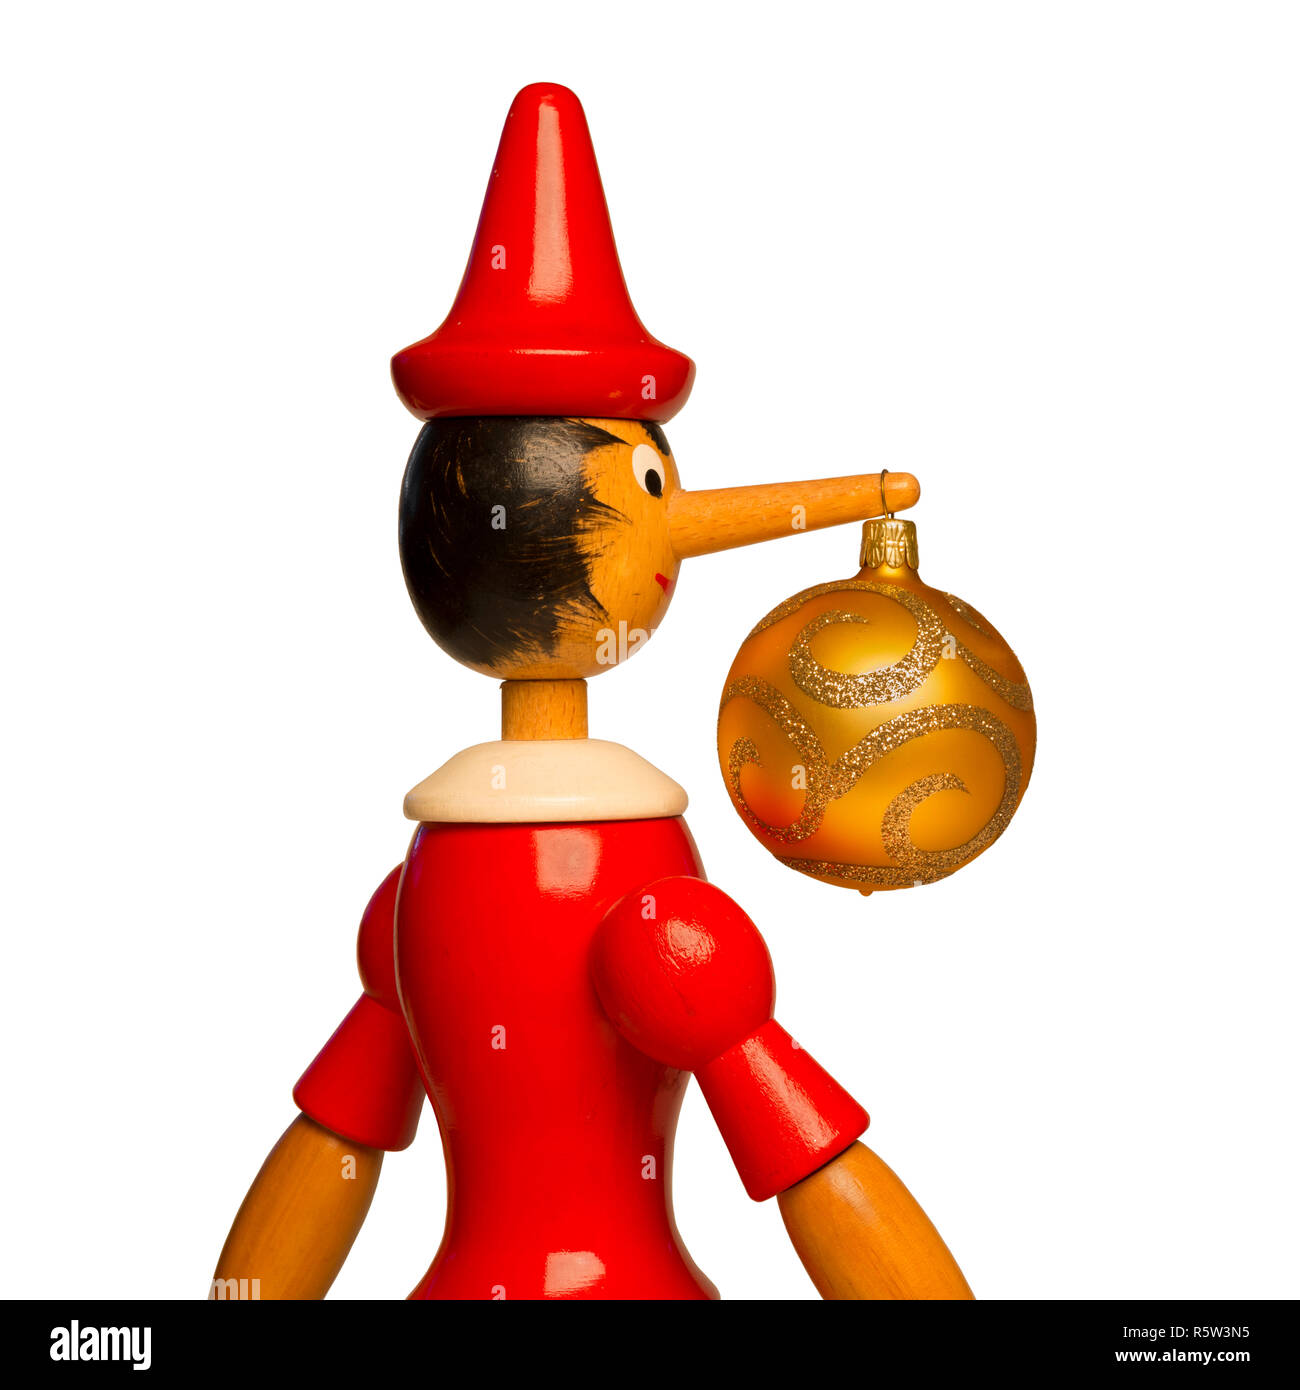 Pinocchio and golden Xmas ball isolated on a white background. Stock Photo